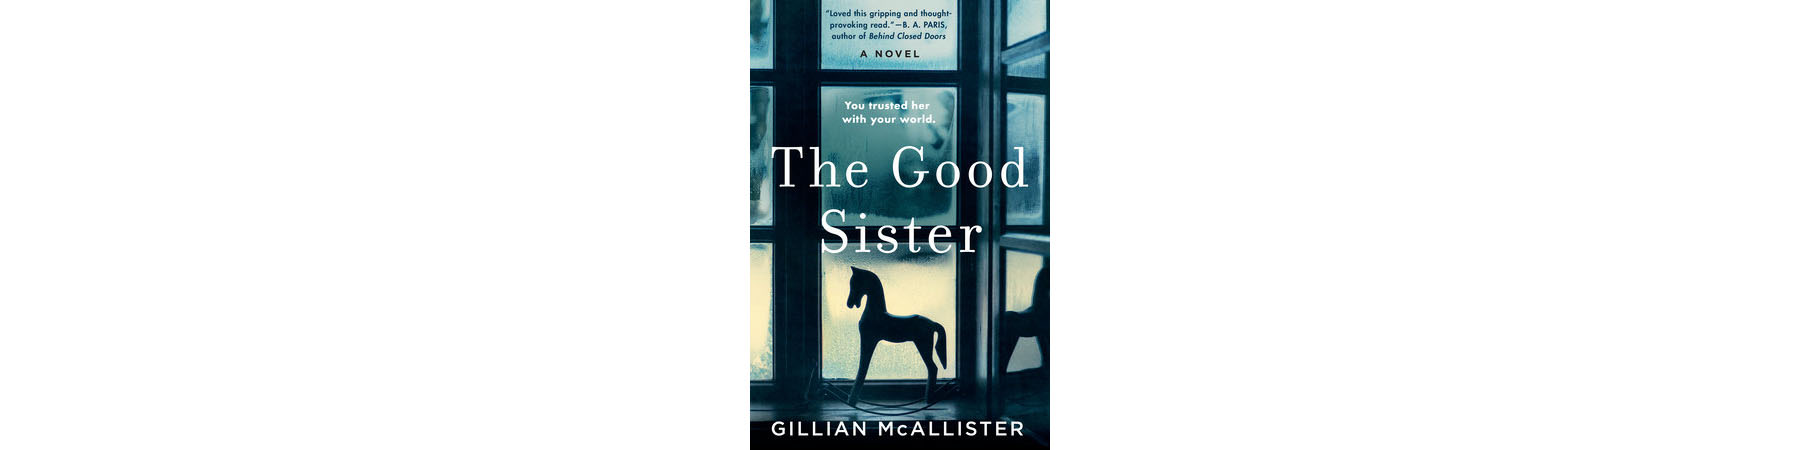 Cover of The Good Sister, by Gillian McAllister